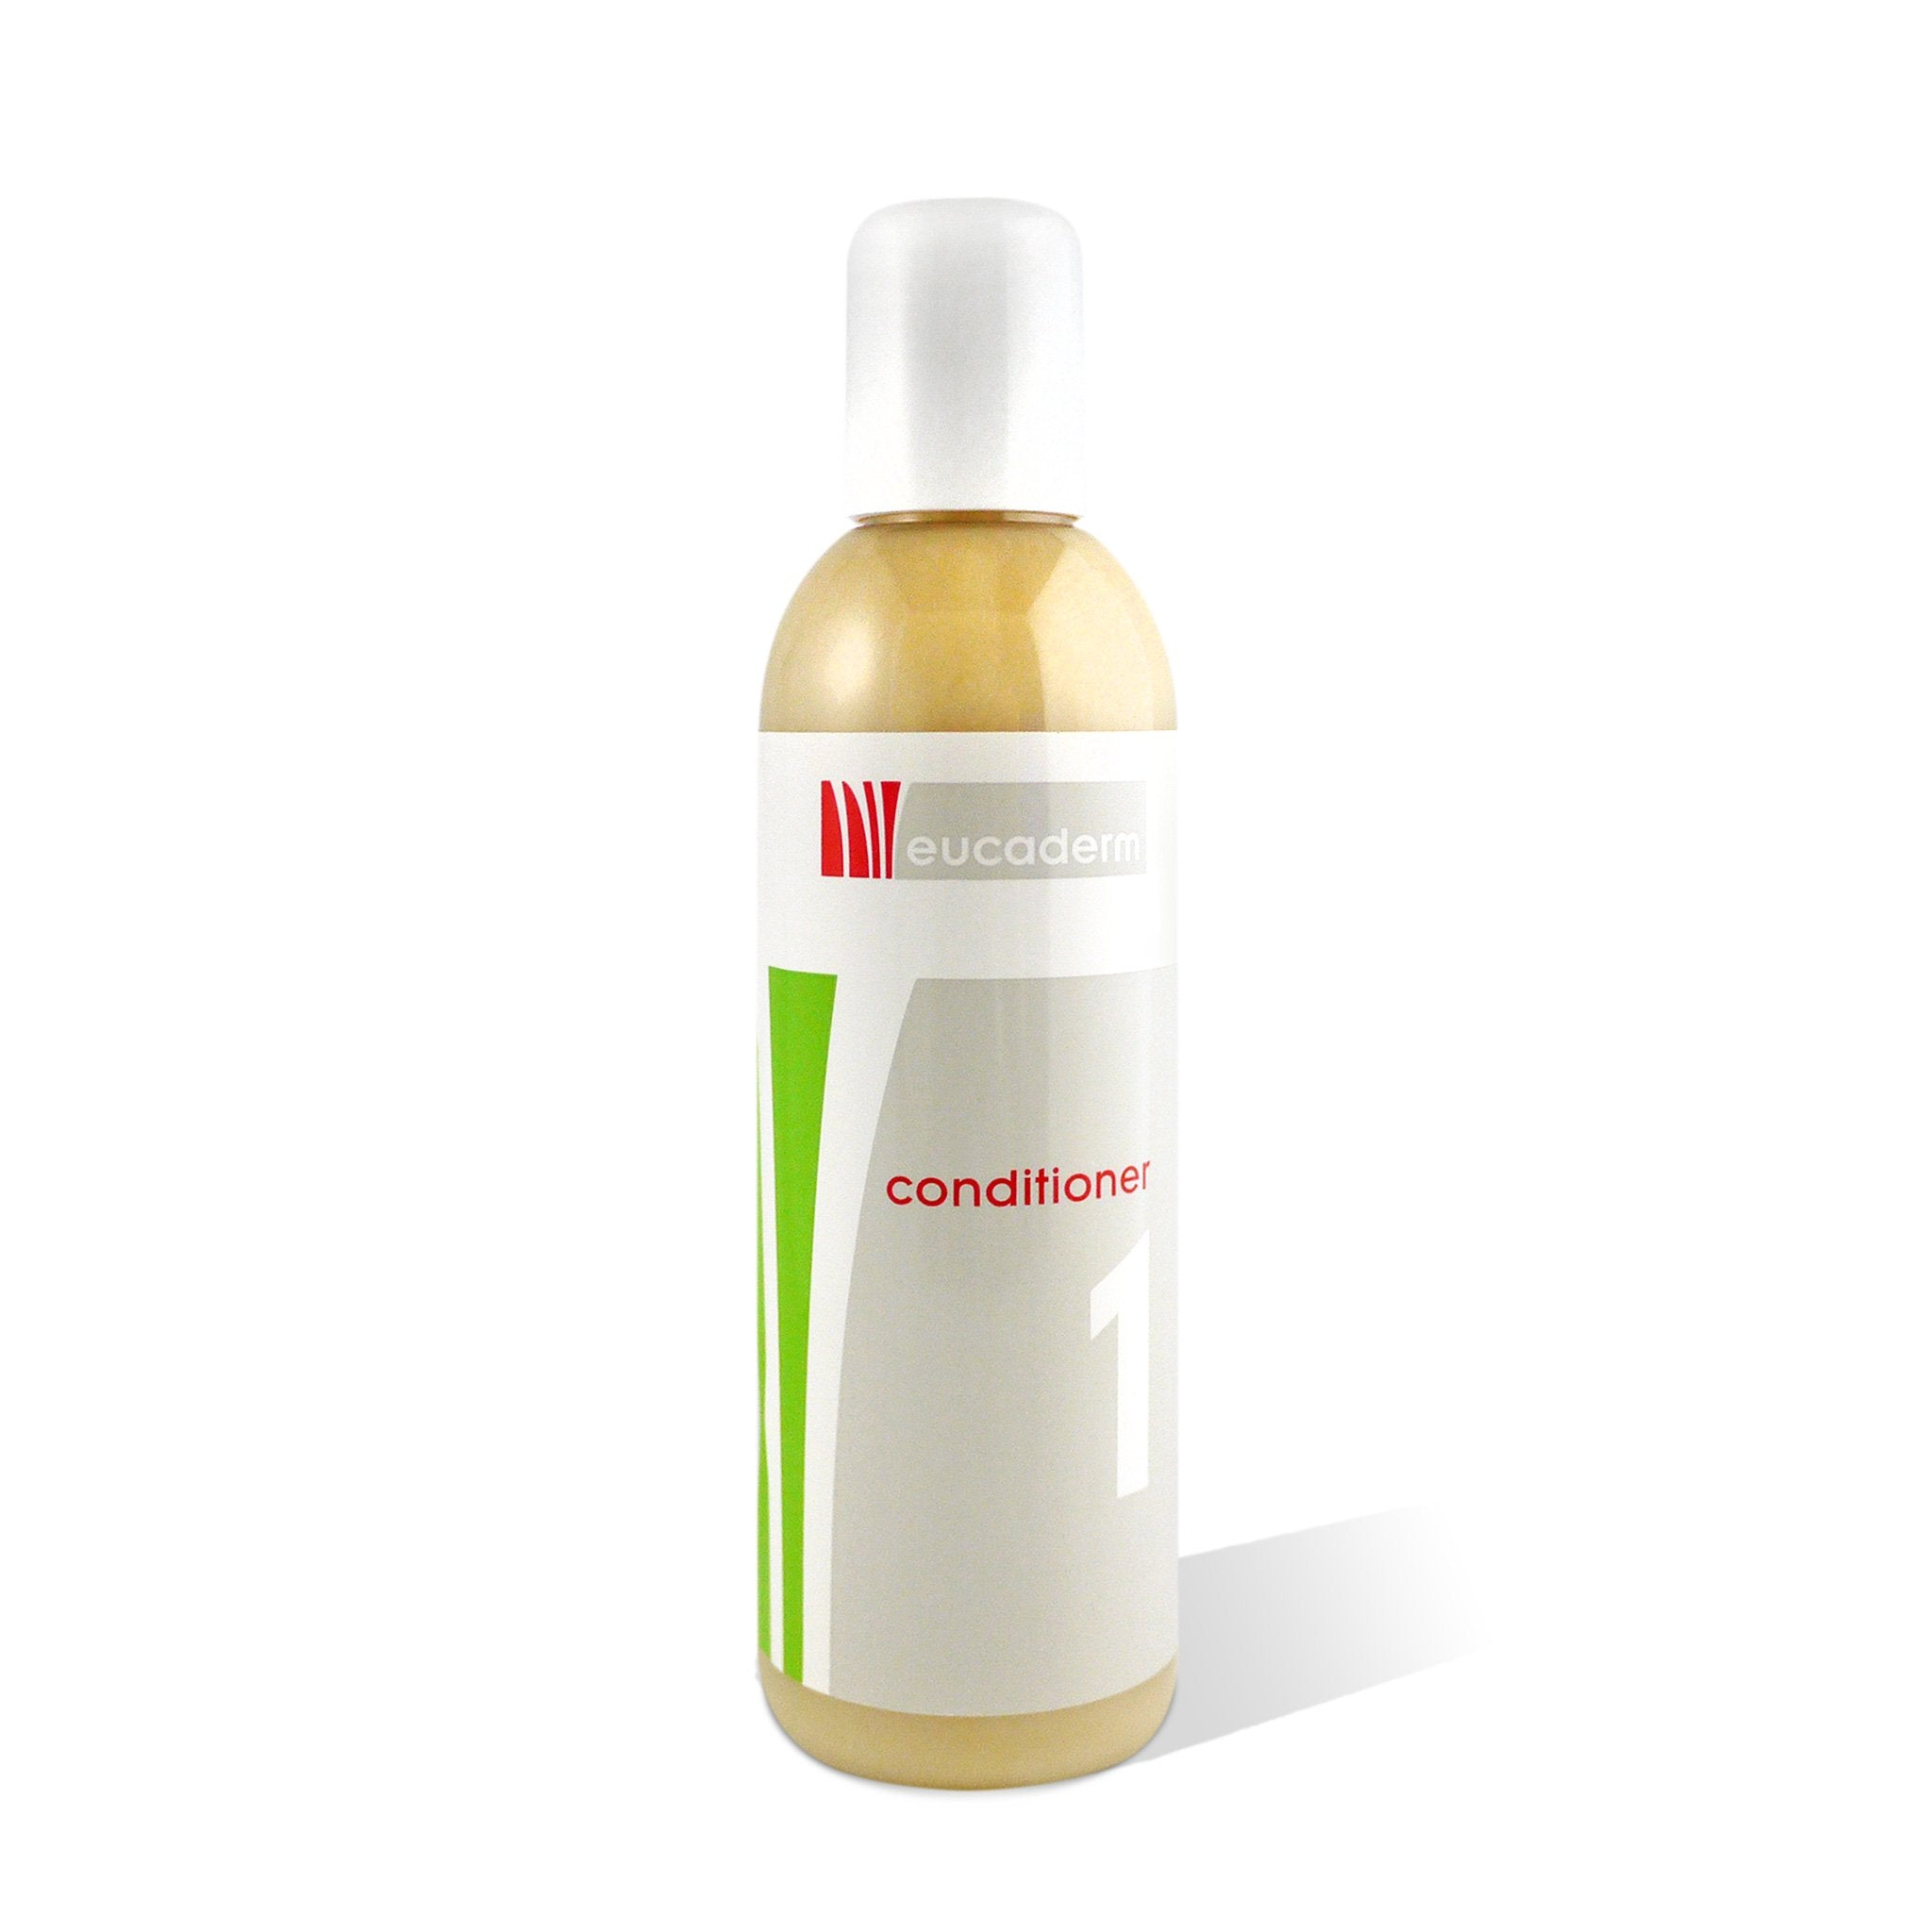 Eucaderm Conditioner No 1 (200ml)